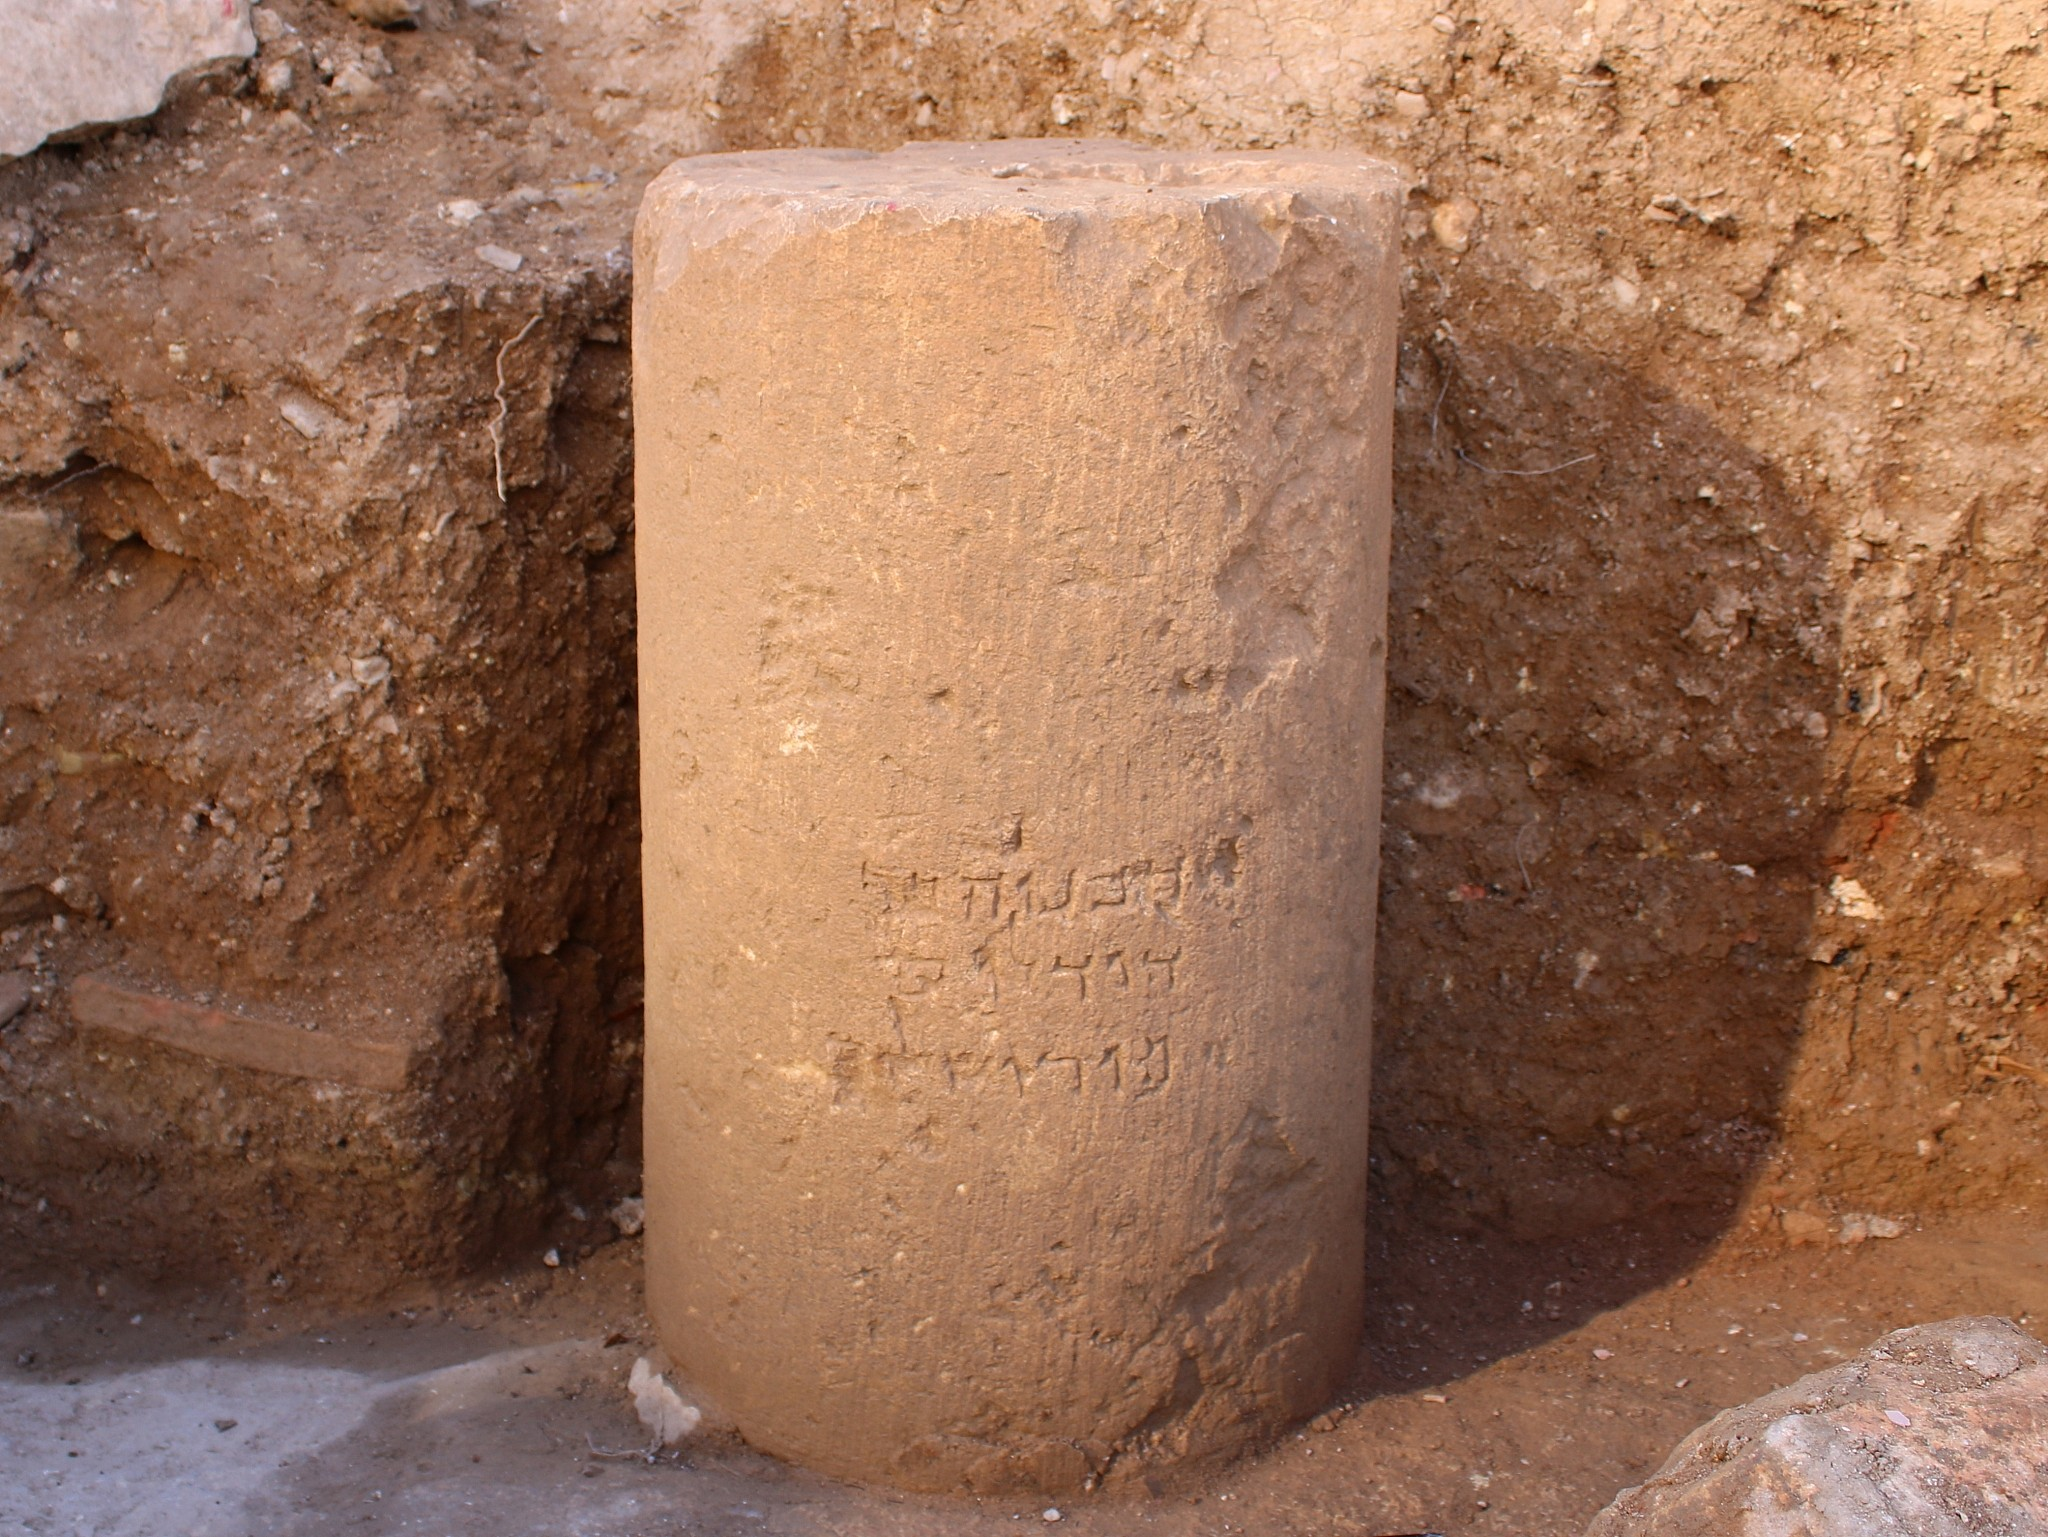 The inscription as it was found in the excavation near the Jerusalem International Convention Center, winter 2018. (Danit Levy, Israel Antiquities Authority)